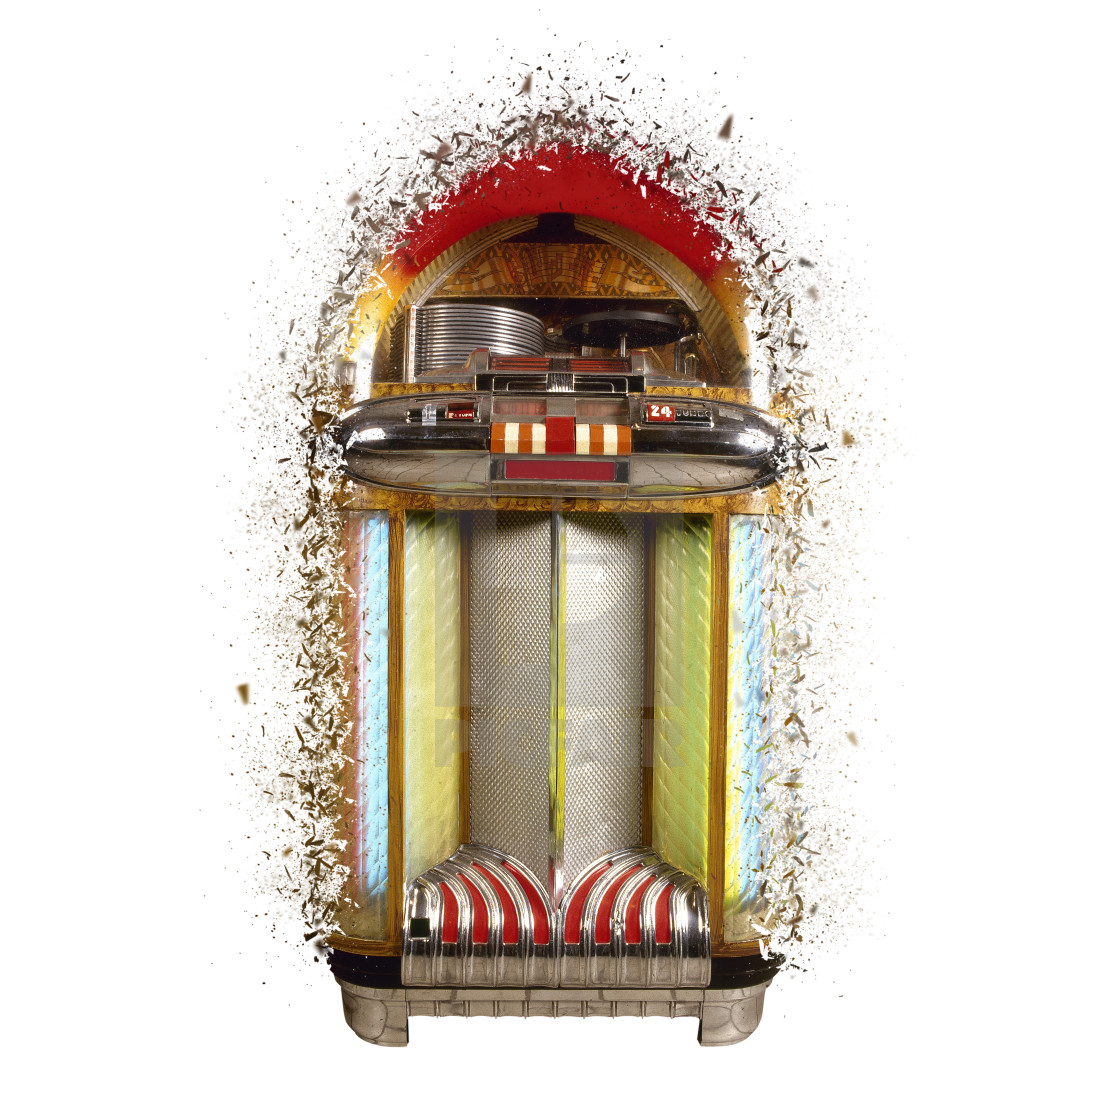 Old jukebox music player exploded - License, download or print for